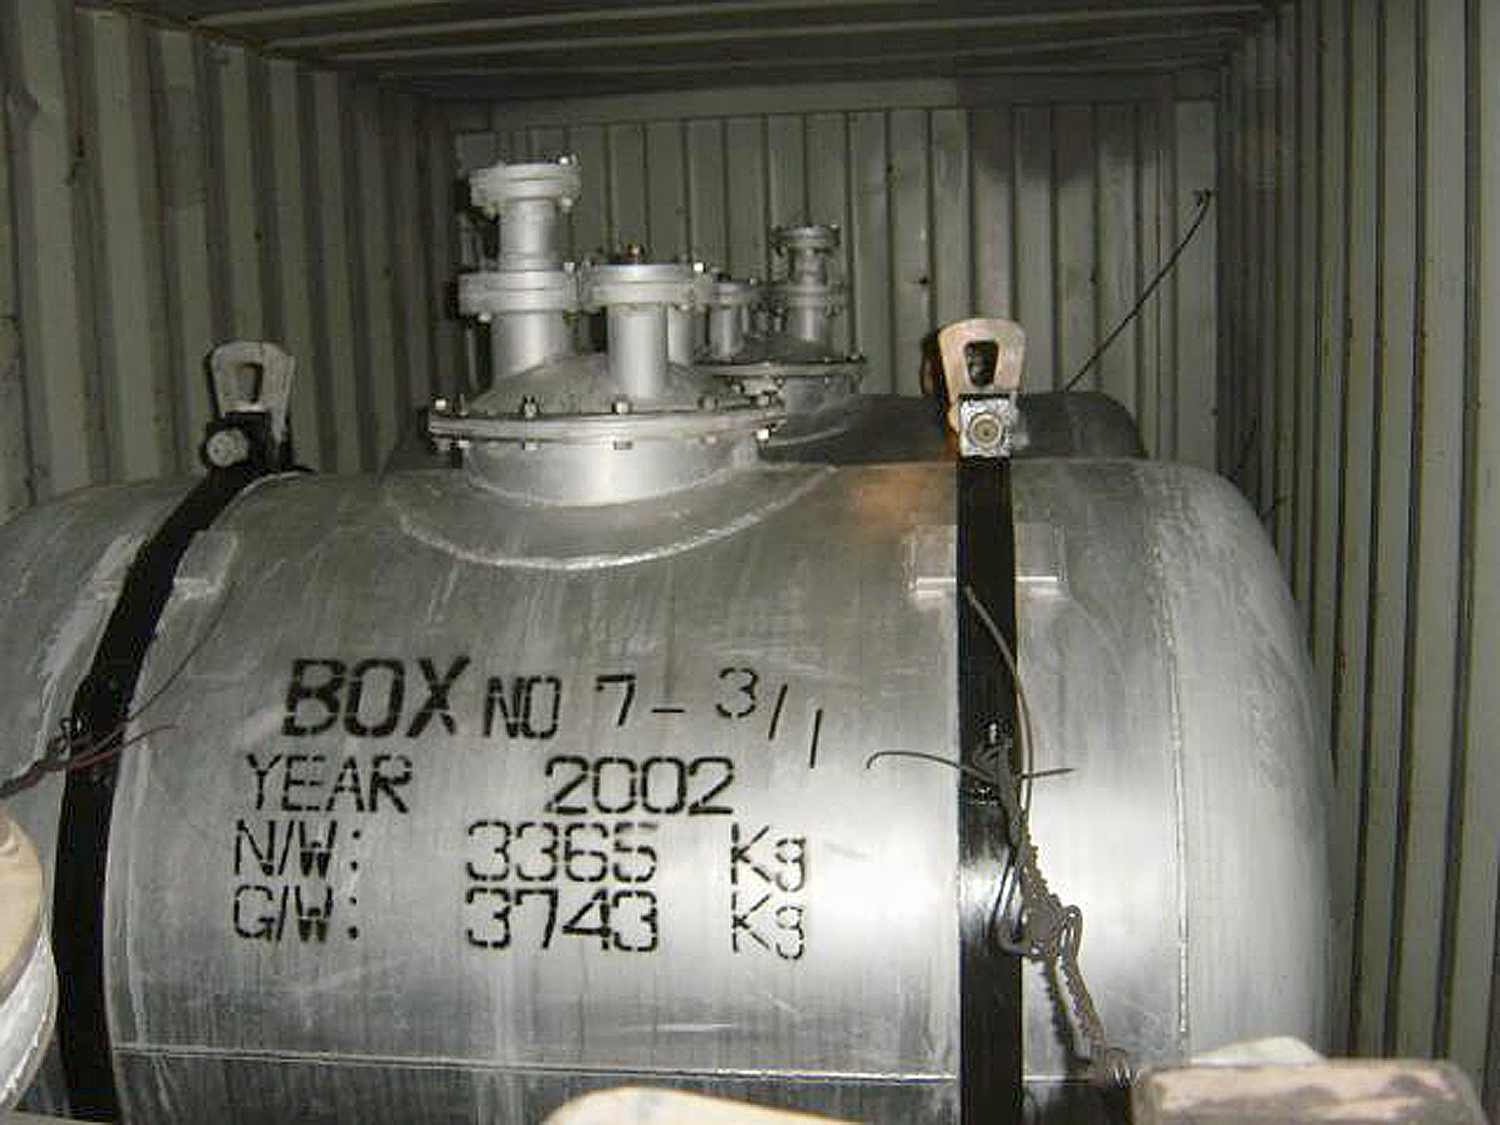 Missile clipart scud missile Scud And Equipment Aboard Missile